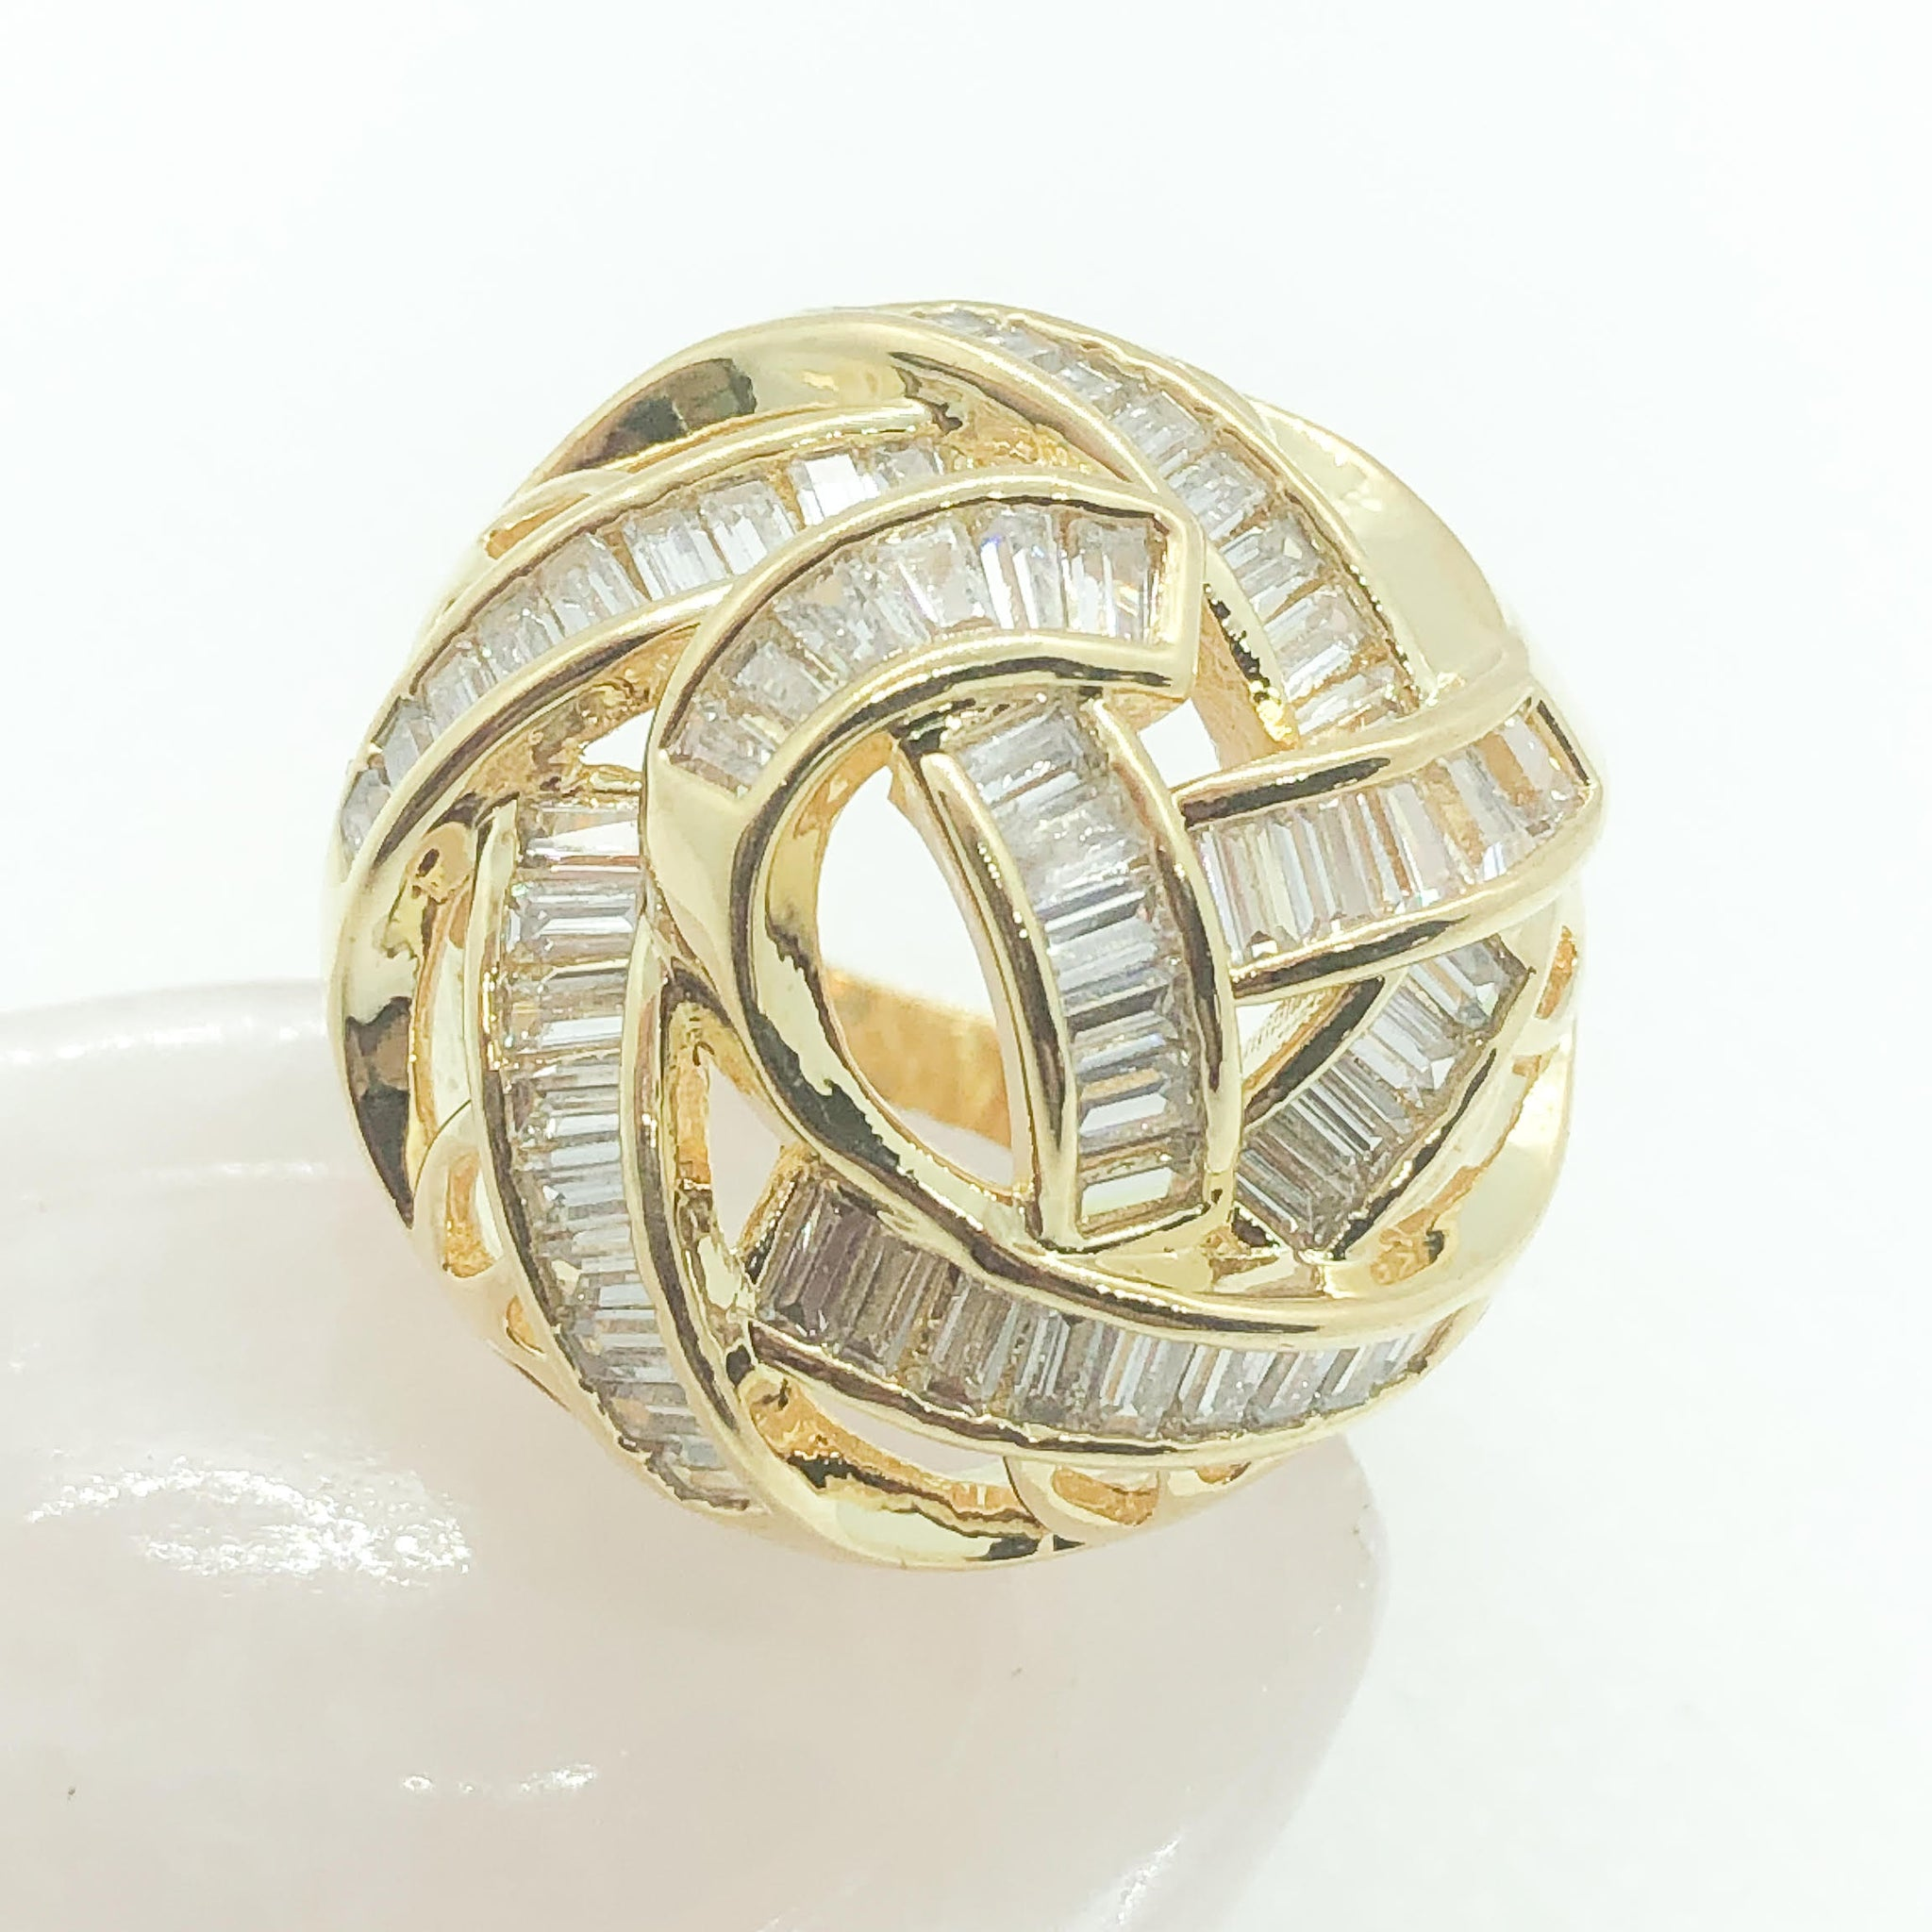 ID:R7511 Women Jewelry 18K Yellow Gold GF Shimmering Eye-Catching Clear Baguette Stones Unique Dome Eternity Ring